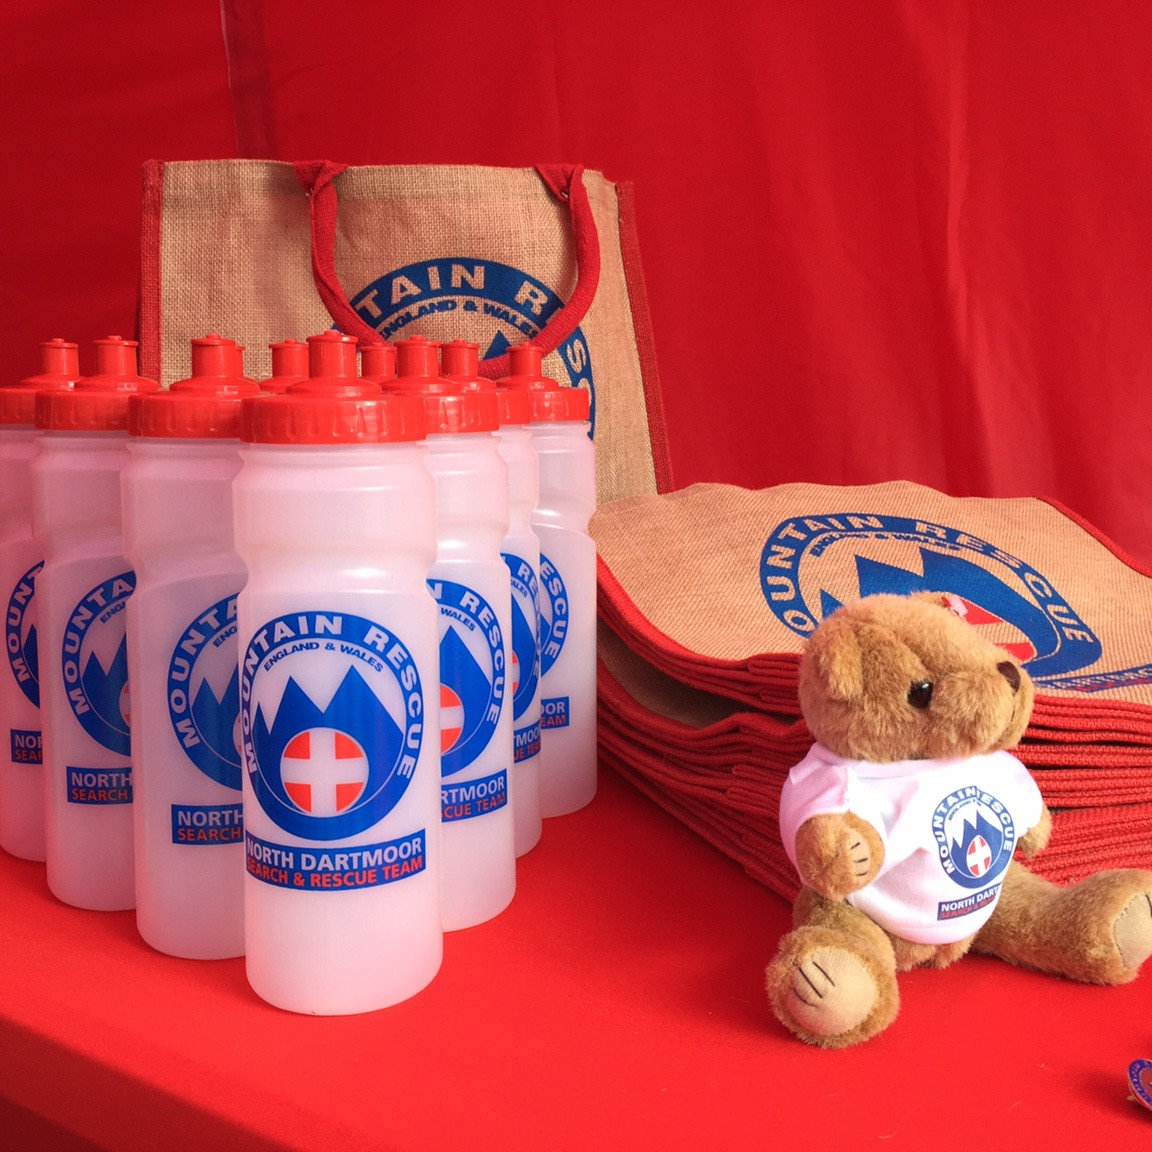 gallerytyu_We really like our new sports bottles and jute shopping bags. The bottles are even made in Britain _)